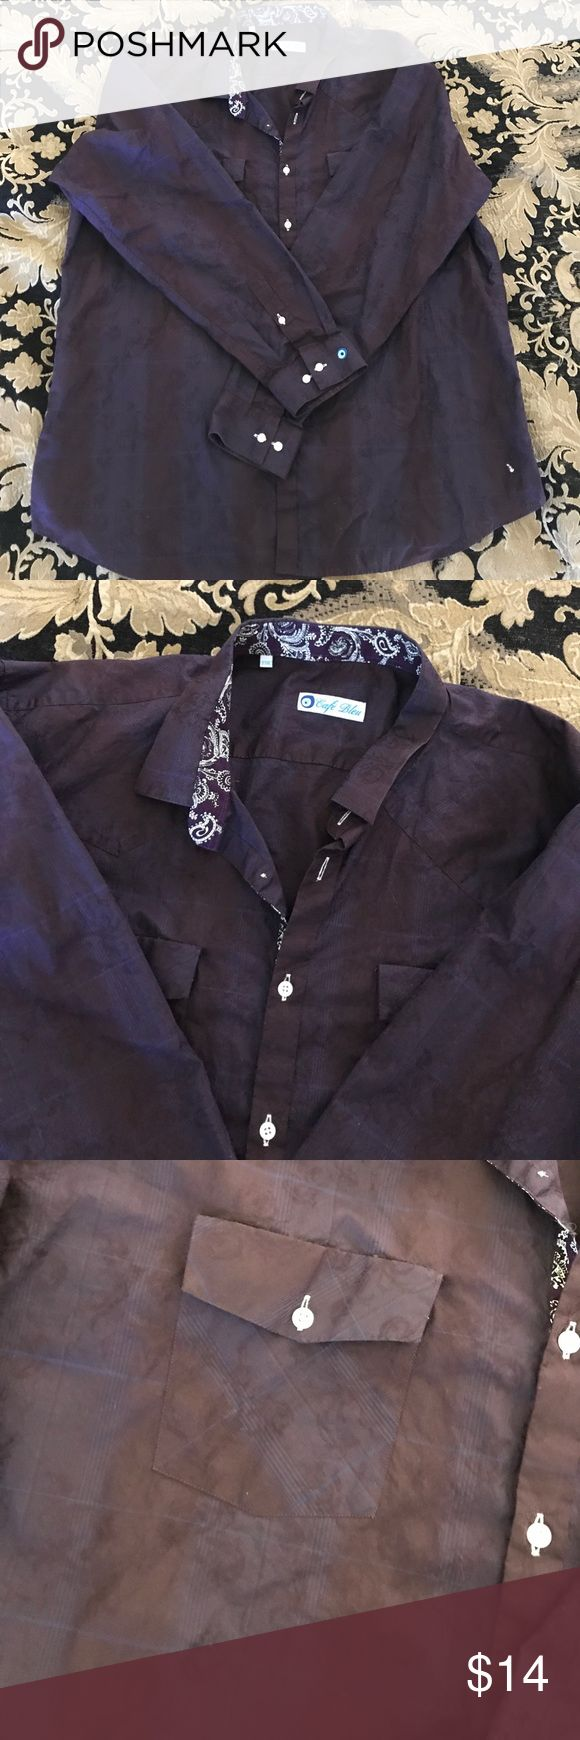 Men's shirt 3xl Shirts